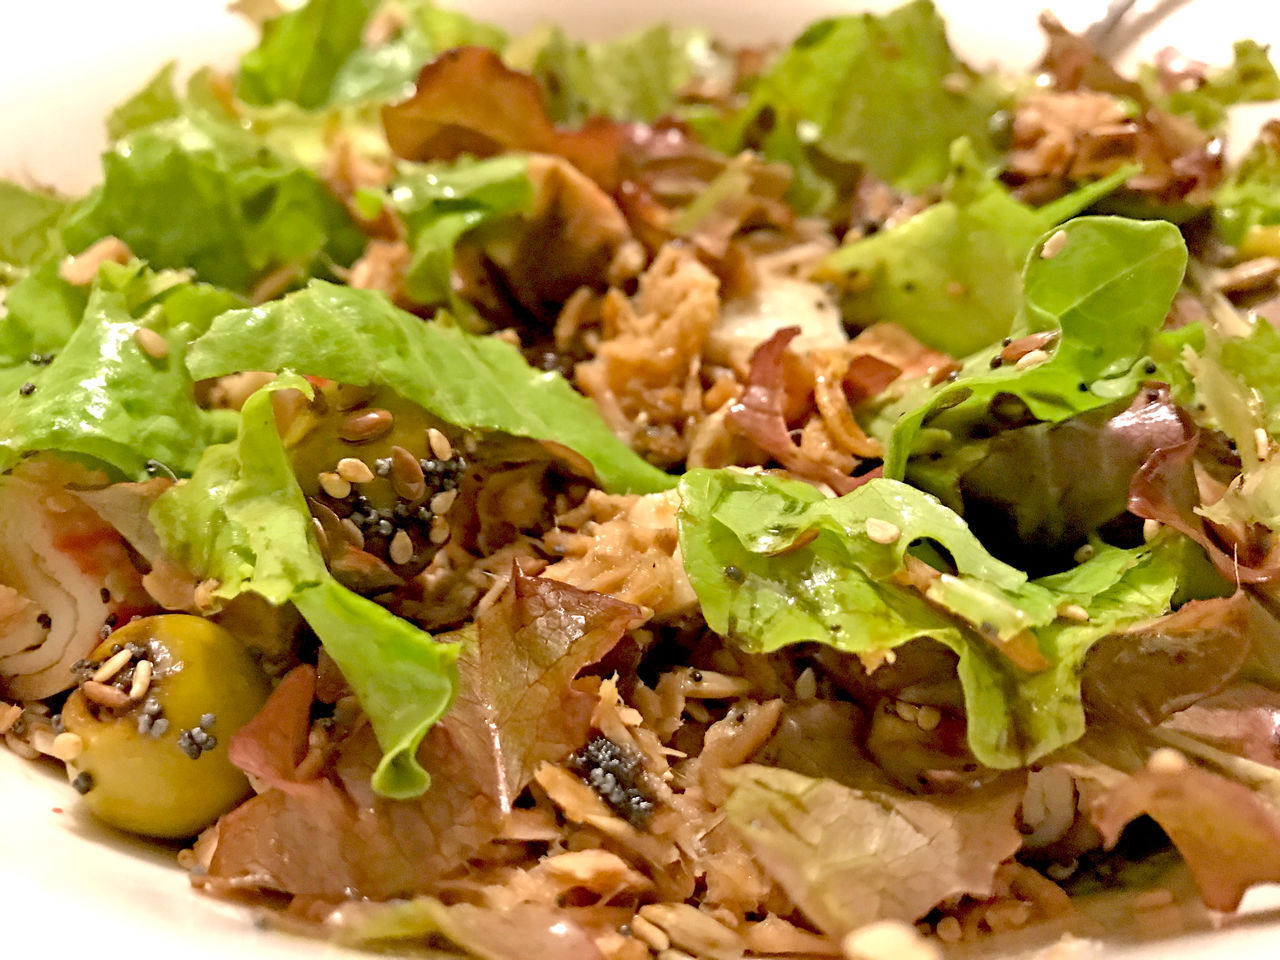 food and drink, food, freshness, healthy eating, close-up, ready-to-eat, no people, salad, indoors, serving size, leaf, day